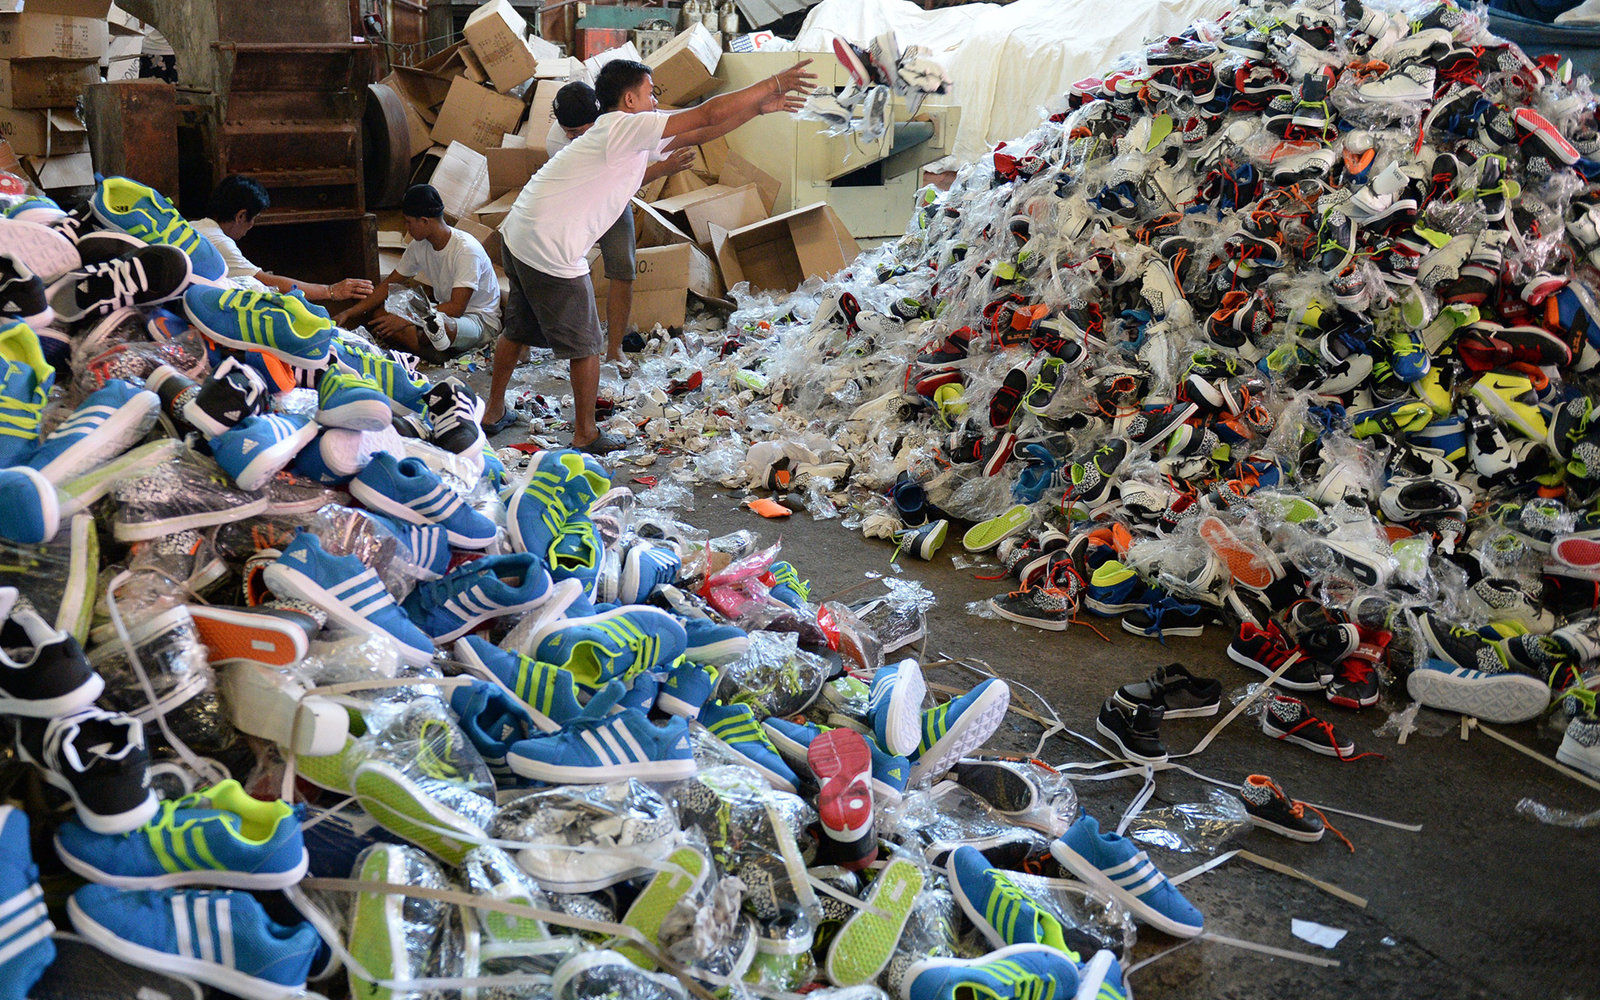 30 000 Counterfeit Shoes Were Confiscated In South Africa